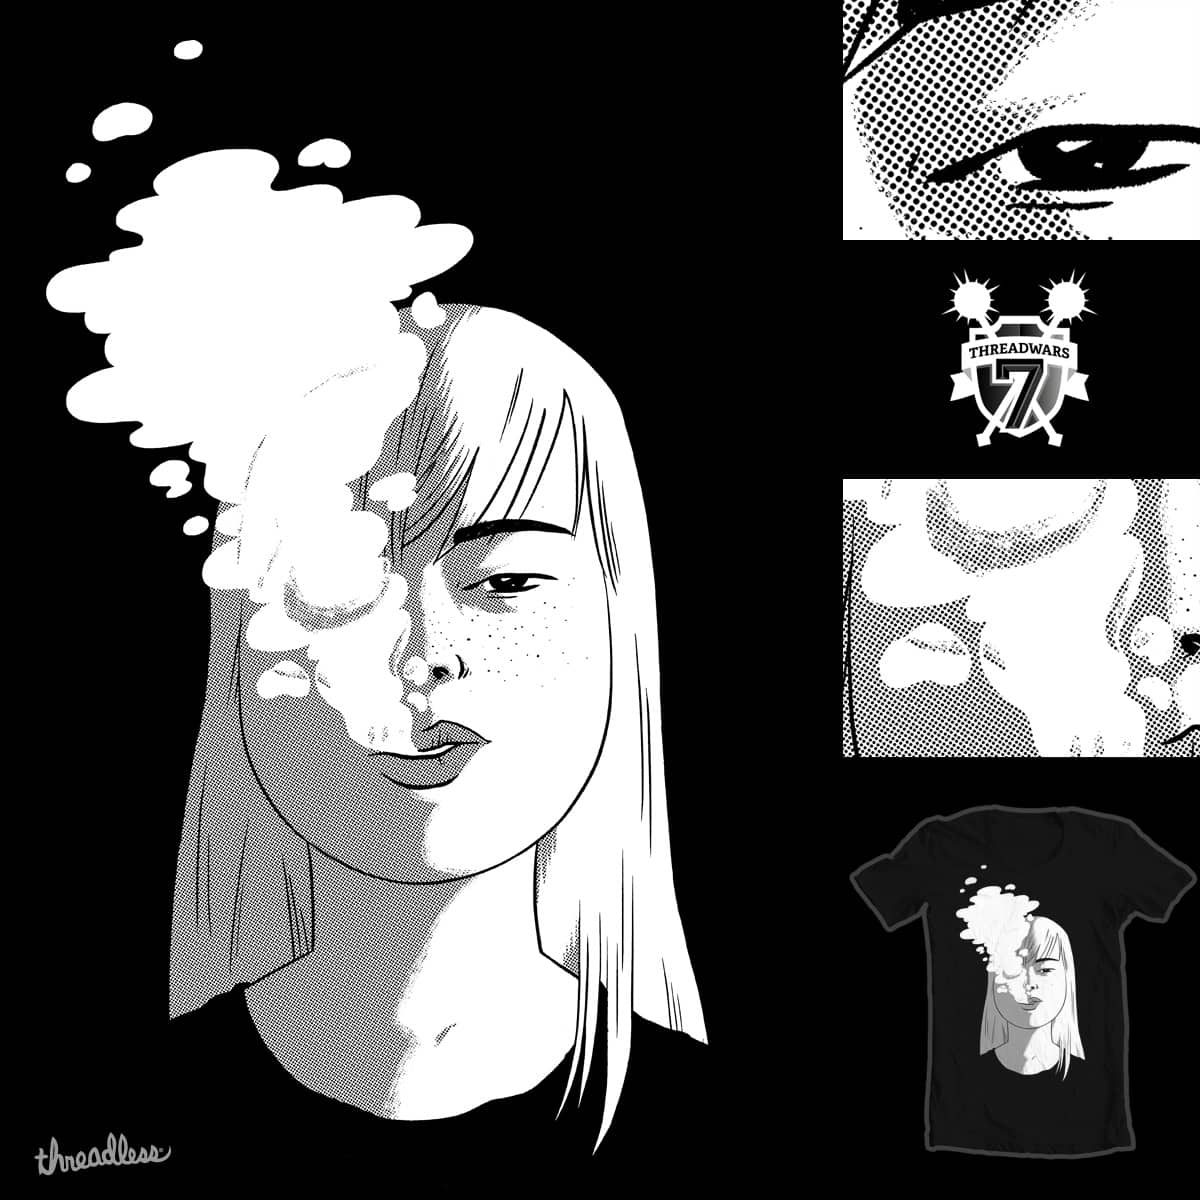 look cool/die young by mike bautista on Threadless